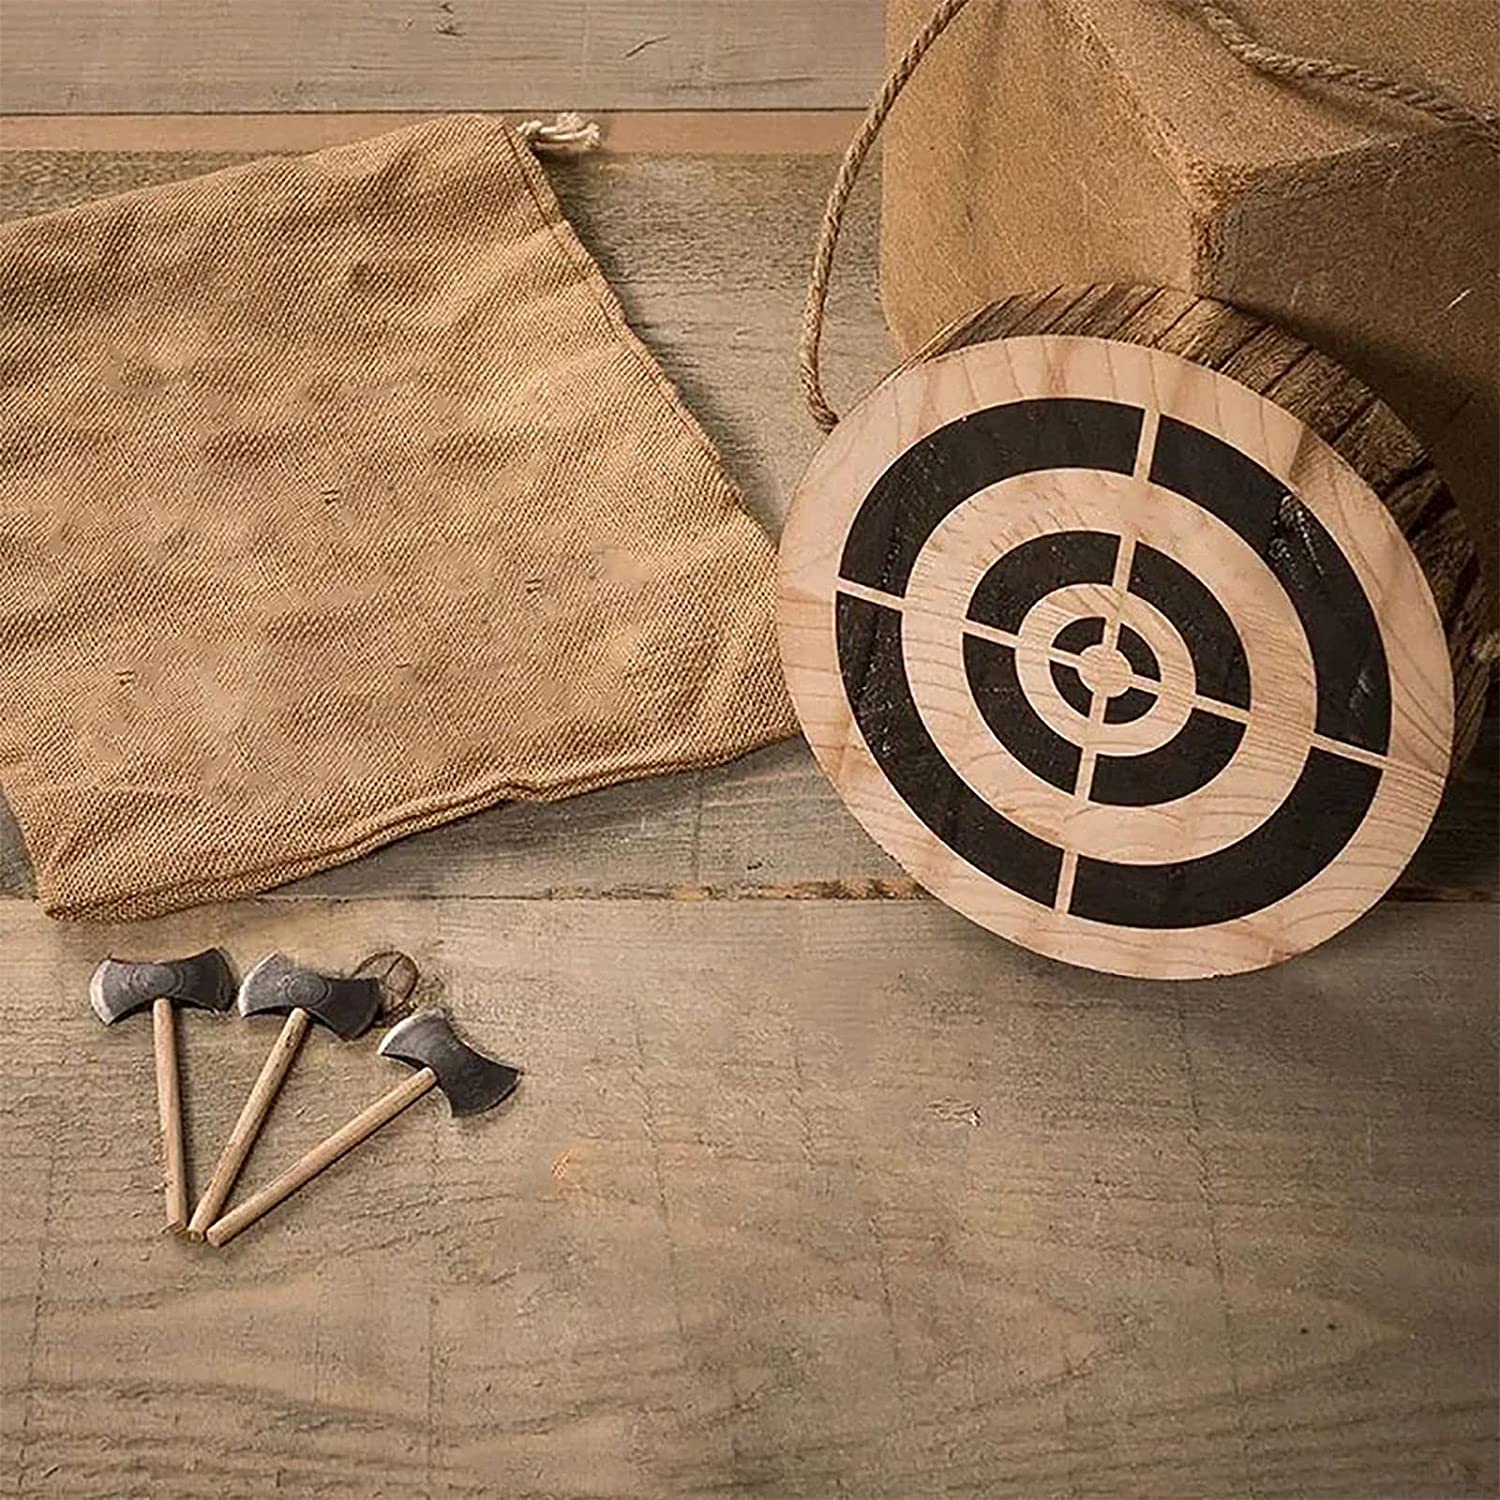 Axe Throwing Game - Wooden Dart A Toy Max 61% Sale SALE% OFF OFF and Frisbee Very